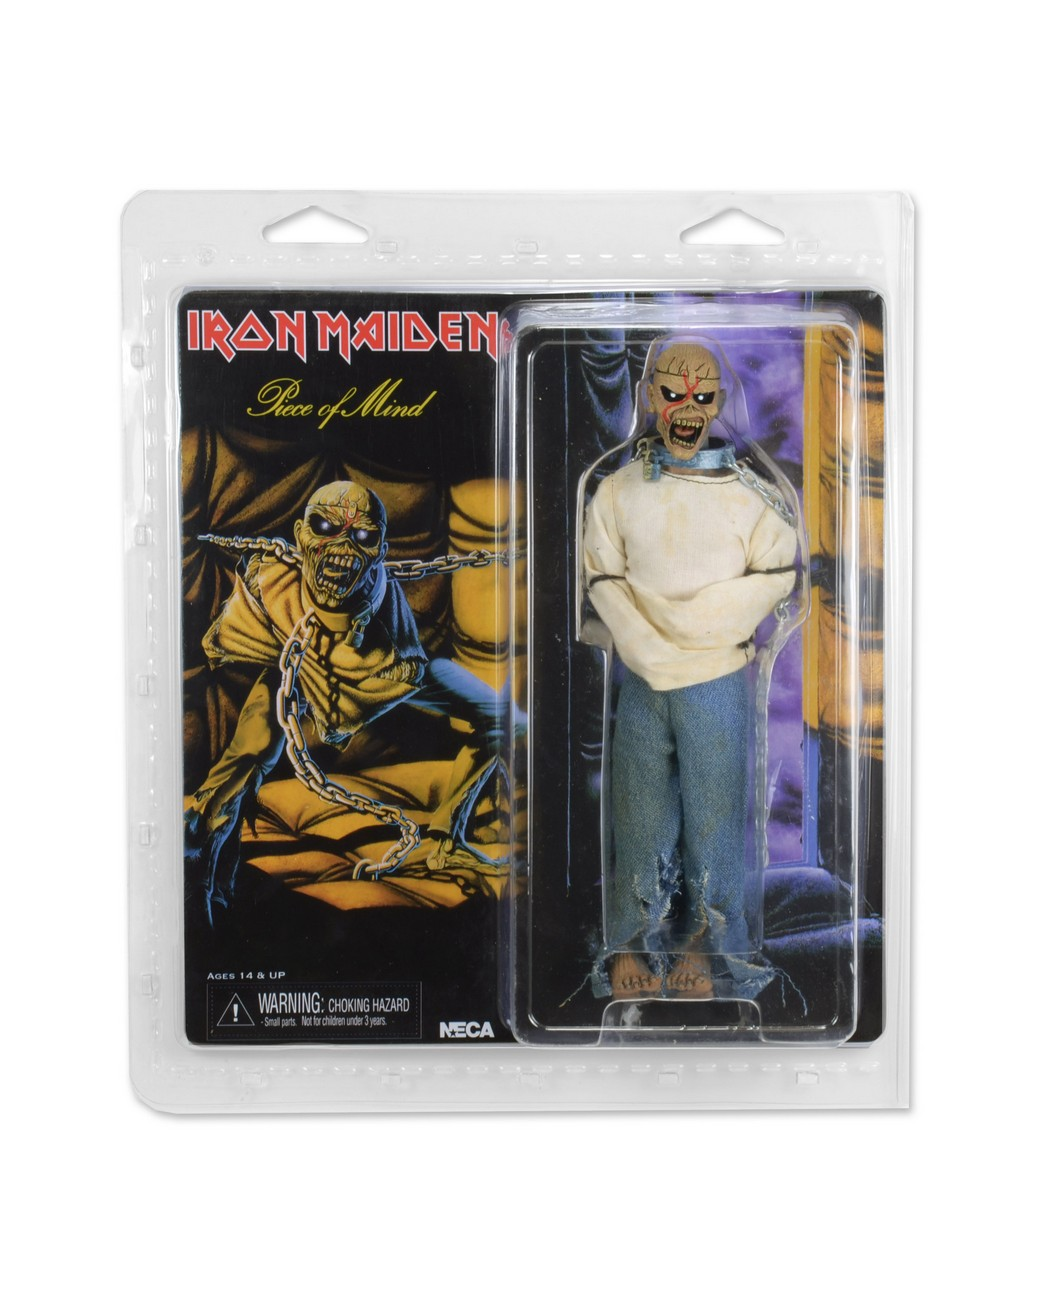 NECA Toys Reissues Iron Maiden & Captain Spaulding 8″ Clothed Figures